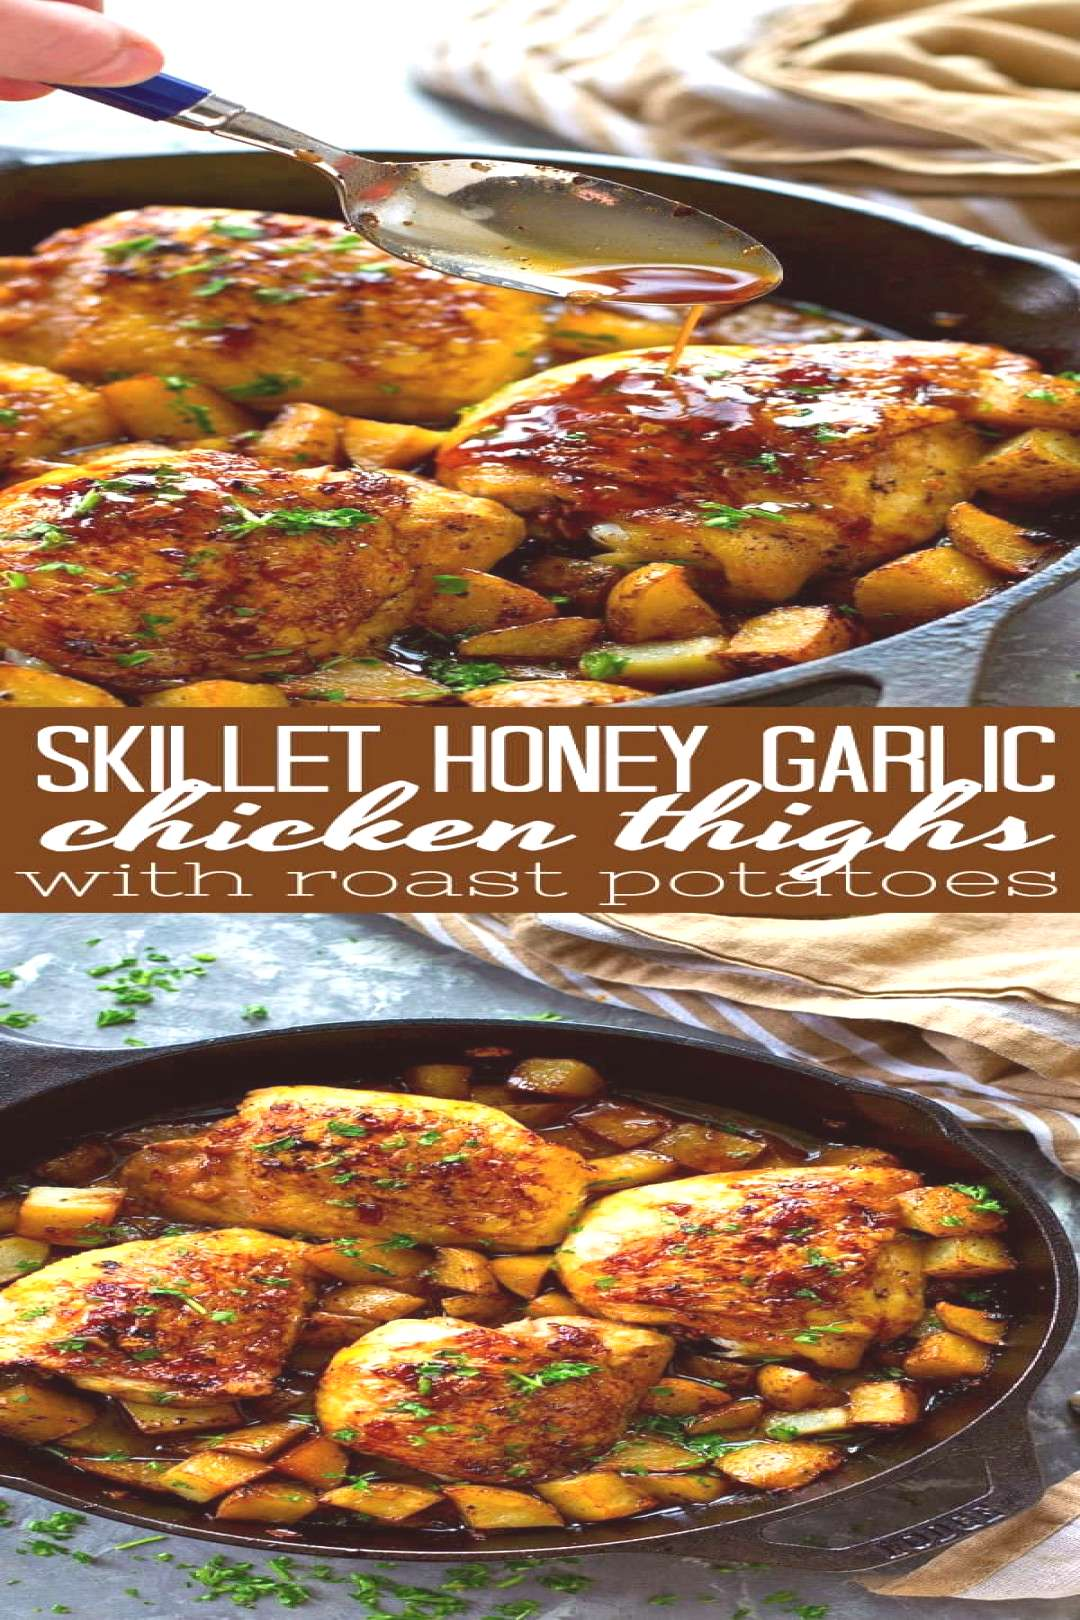 Juicy honey garlic chicken thighs and crispy roast potatoes are seared and baked in the most FLAVOR